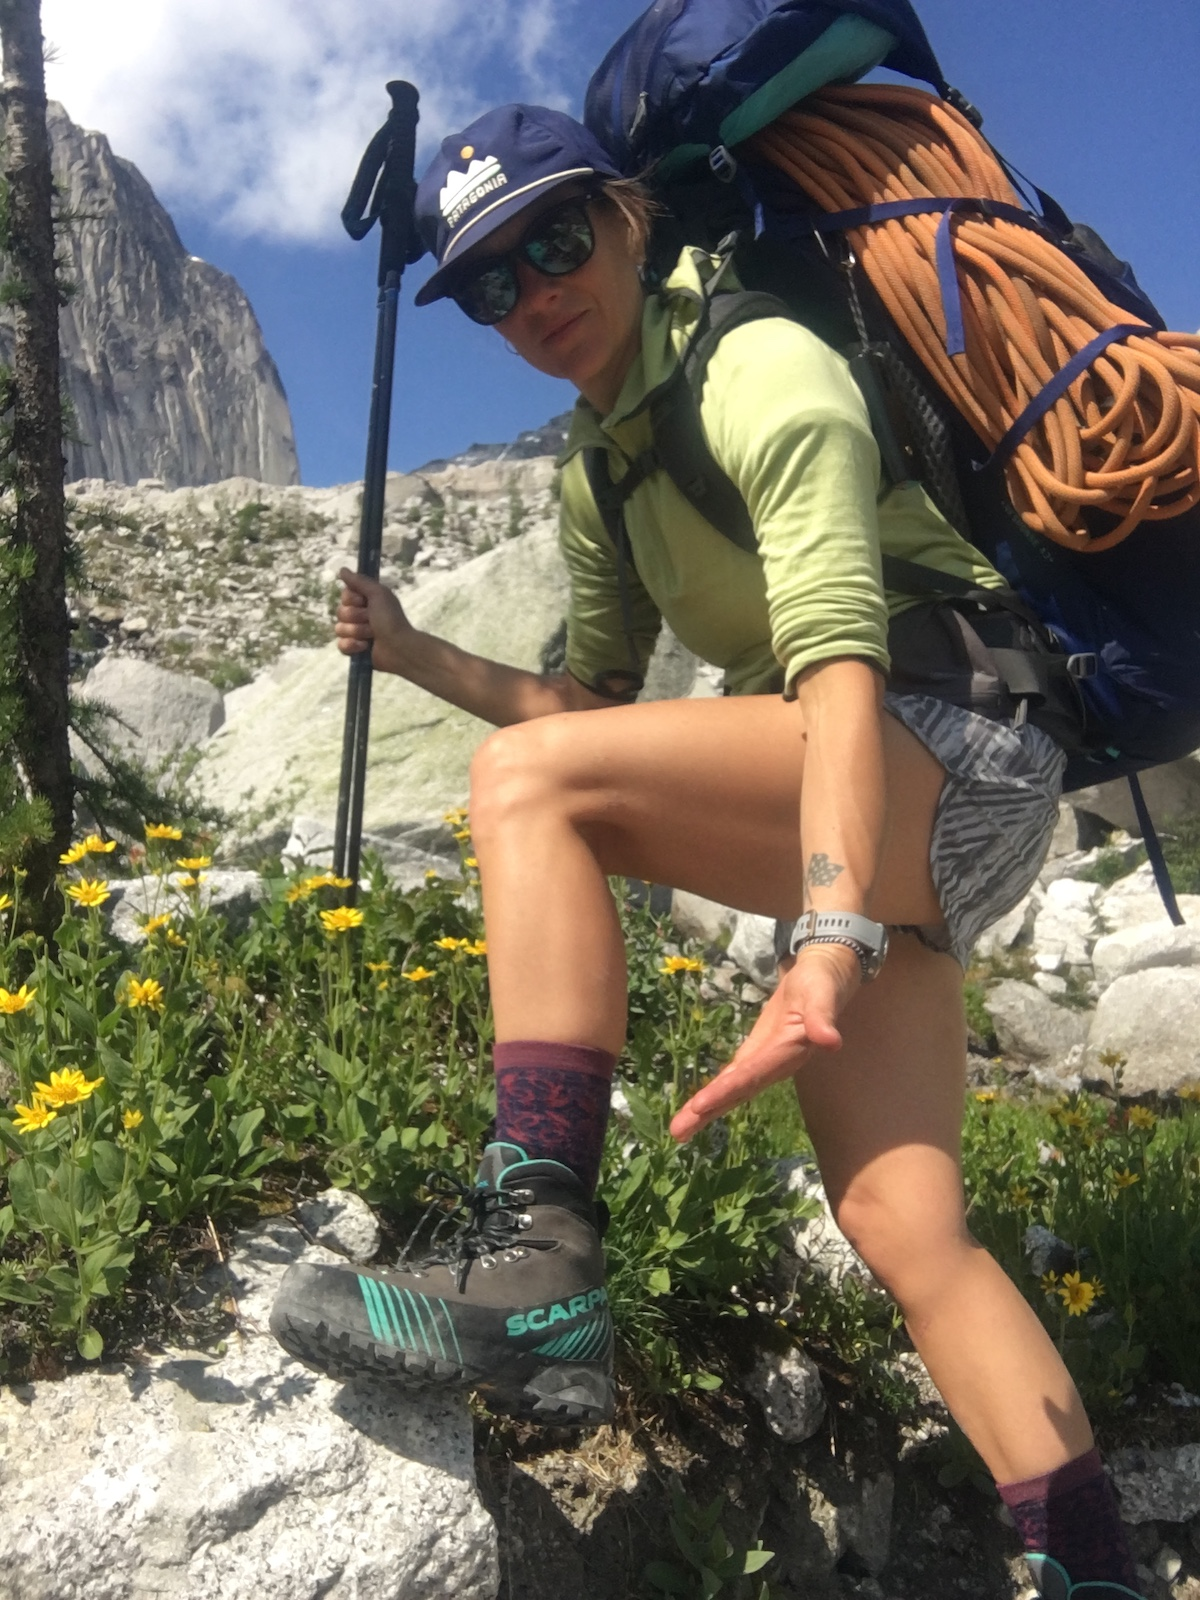 The author showing off the Scarpa Ribelle HD boots in the Canadian Rockies. [Photo] Kate Erwin collection